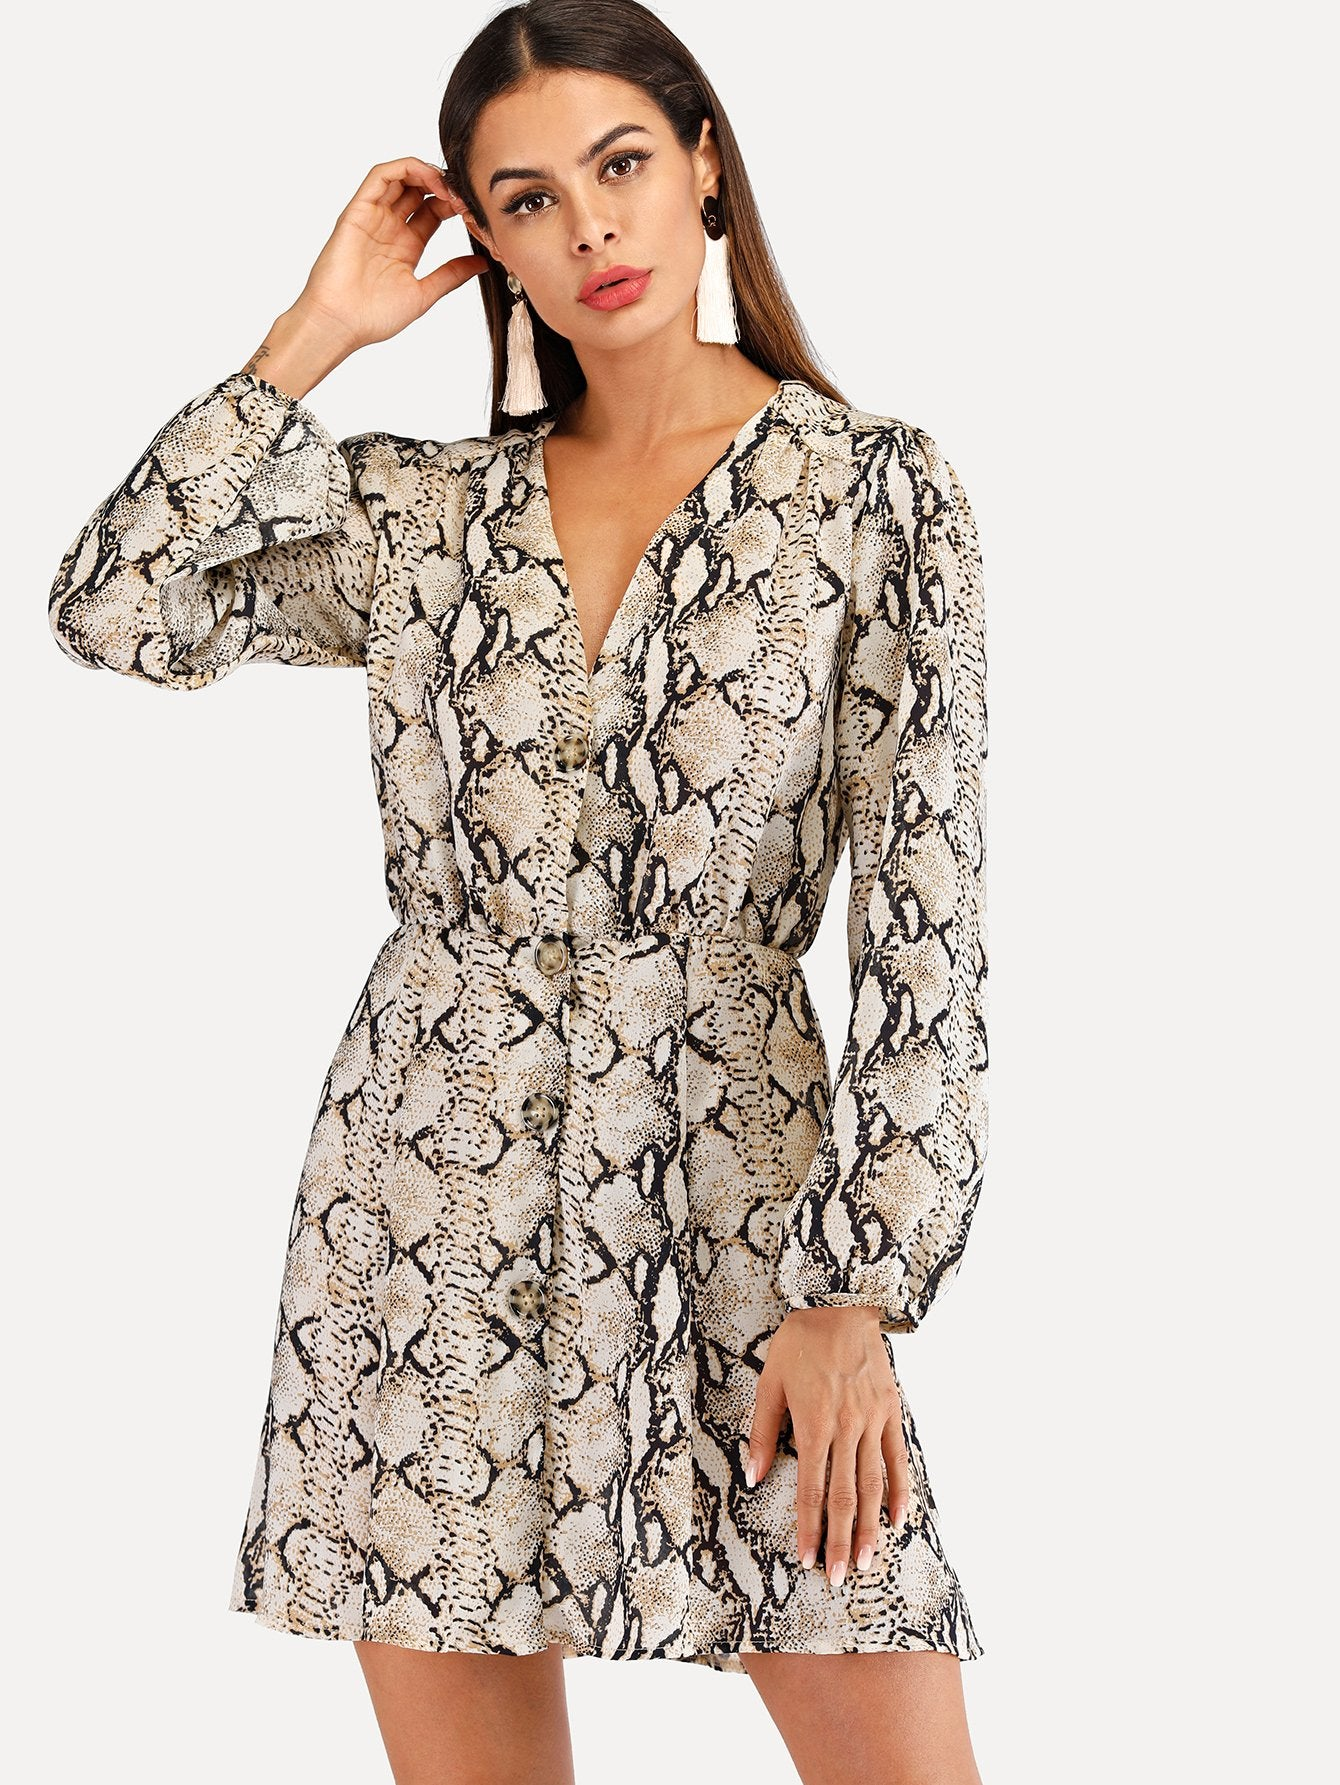 lord owens womens dresses print snake print animal print